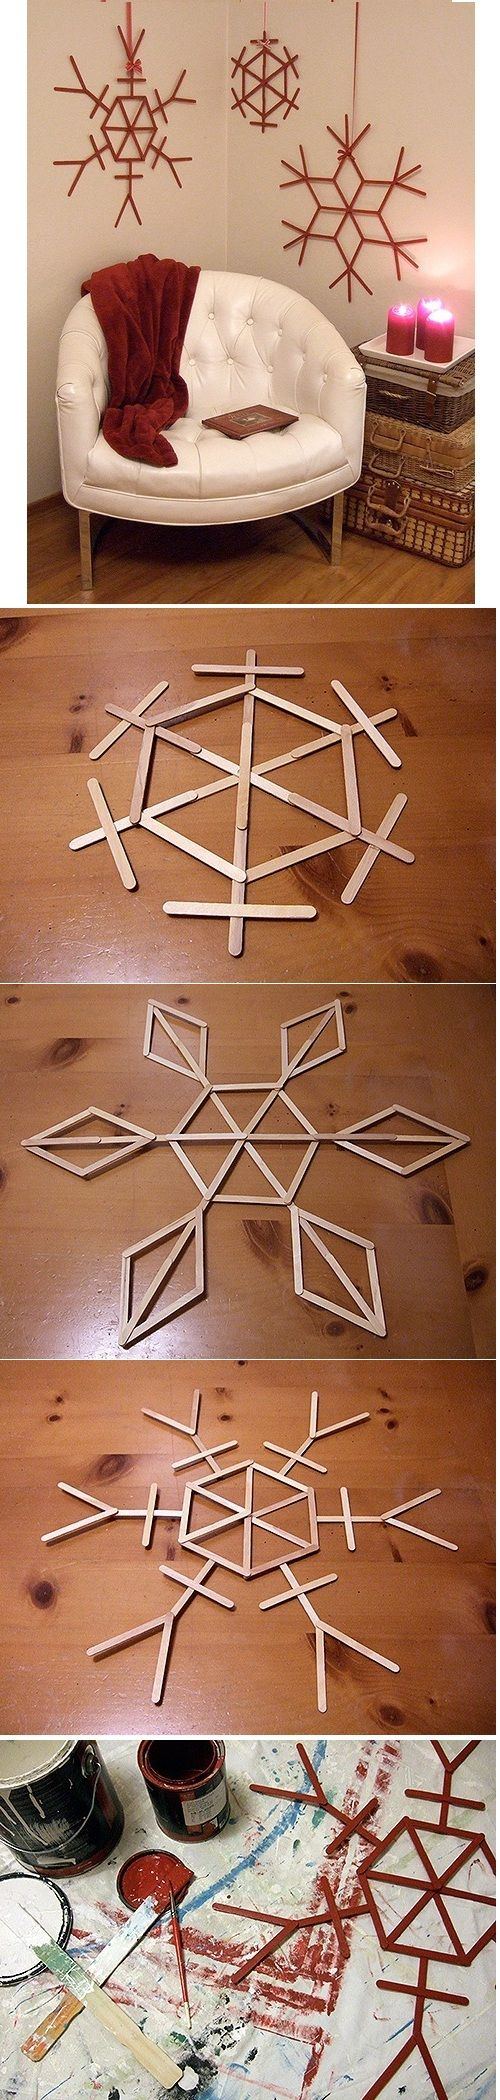 Popsicle sticks turned snowflakes!: Idea, Christmas Crafts, Giant Snowflakes, Sticks Snowflakes, Christmas Decor, Popsicle Sticks, Popsicles Sticks, Kid, Crafts Sticks